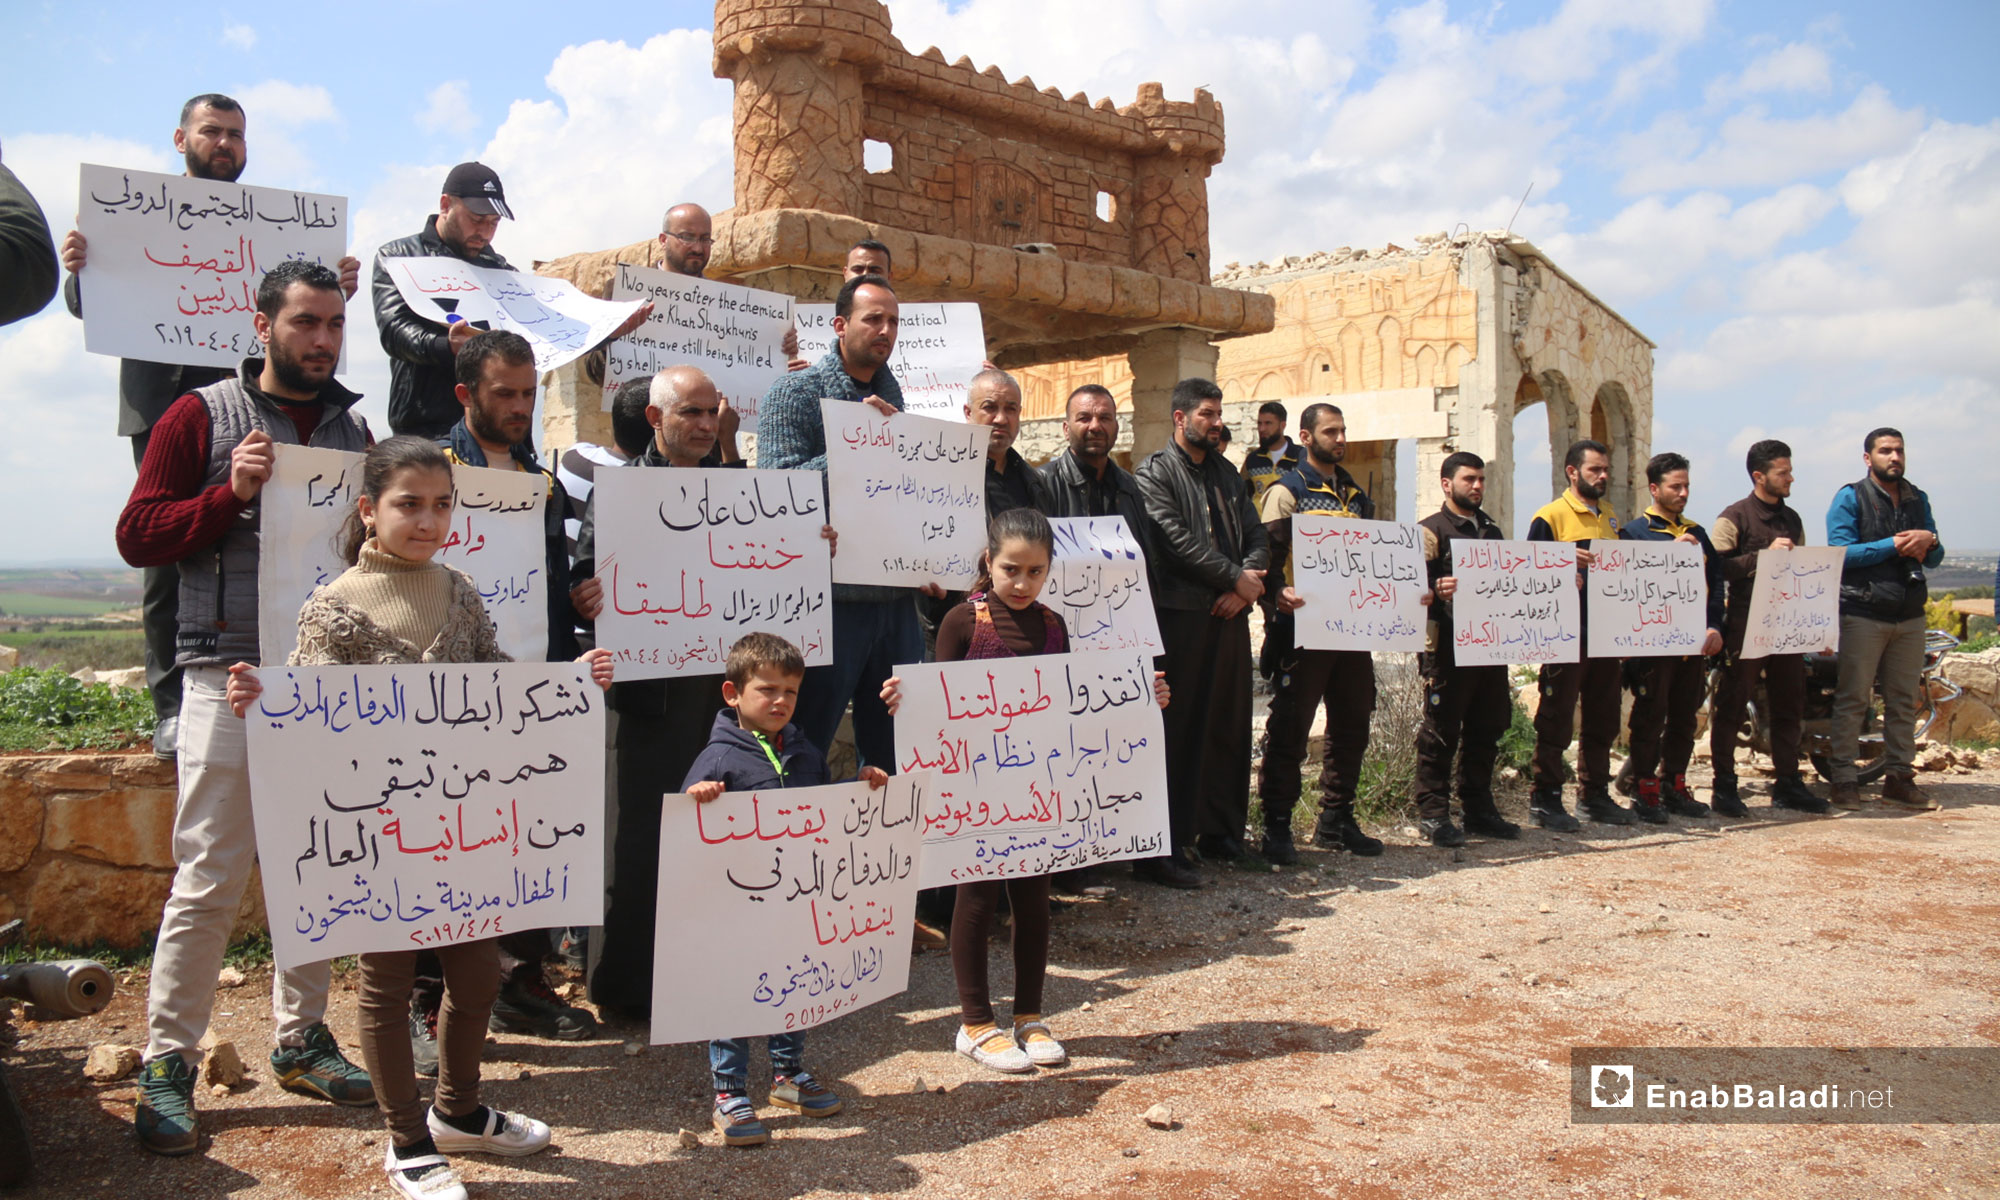 "A vigil at the second anniversary of the chemical massacre of Khan Shaykhun, rural Idlib – April 4, 2019 (Enab Baladi) The signs held by the people say: ""Suffocated, burnt and mutilated, are there any death methods left that you have not tried yet; hold al-Assad accountable, chemical weapons  Khan Shaykhun/ Al-Assad is a war criminal, killing us with all the tools of crime/ two years ago, he suffocated us, and he is yet killing us/ 04.04.2017 is a day that our generations will not forget/ Bashar al-Assad is killing his people with an international license/ Two years have passed since the chemical weapons' massacre and the massacres of the Russians and the regime are yet going on/We demand that the international community stop the shelling and protect the civilians/ Save our childhood from the criminality of the al-Assad regime; Massacres by al-Assad and Putin are continuing/ Two years have passed since we were suffocated and the criminal is still free/The tools are many and the criminal is but one; chemical weapons, aircraft, missiles, and the massacres are still going on/We thank the heroes of the Civil Defense, they are what is left of the world's humanity, the children of the city of Khan Shaykhun/He is making an art out of killing his people and has a plan to get back Golan/Two years have passed since our suffocation, and our children are still suffering the bitterness of daily shelling."""